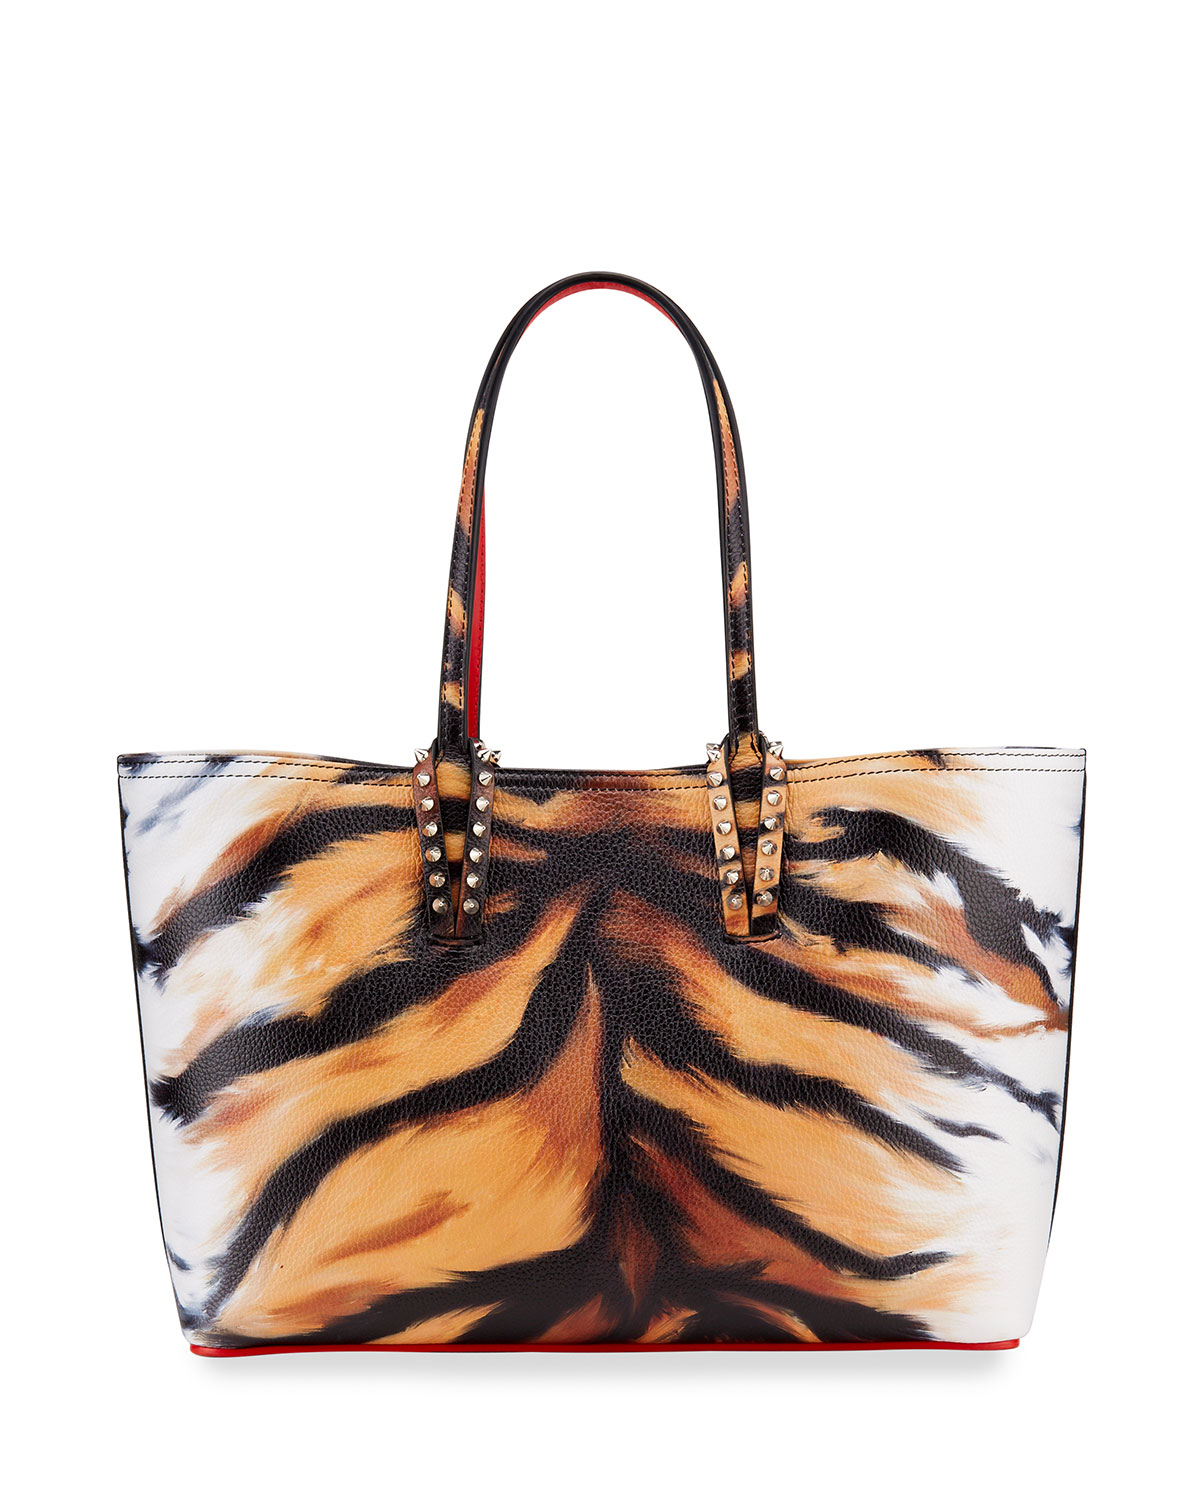 Christian Louboutin Leathers CABATA SMALL TIGER-PRINT SPIKED TOTE BAG